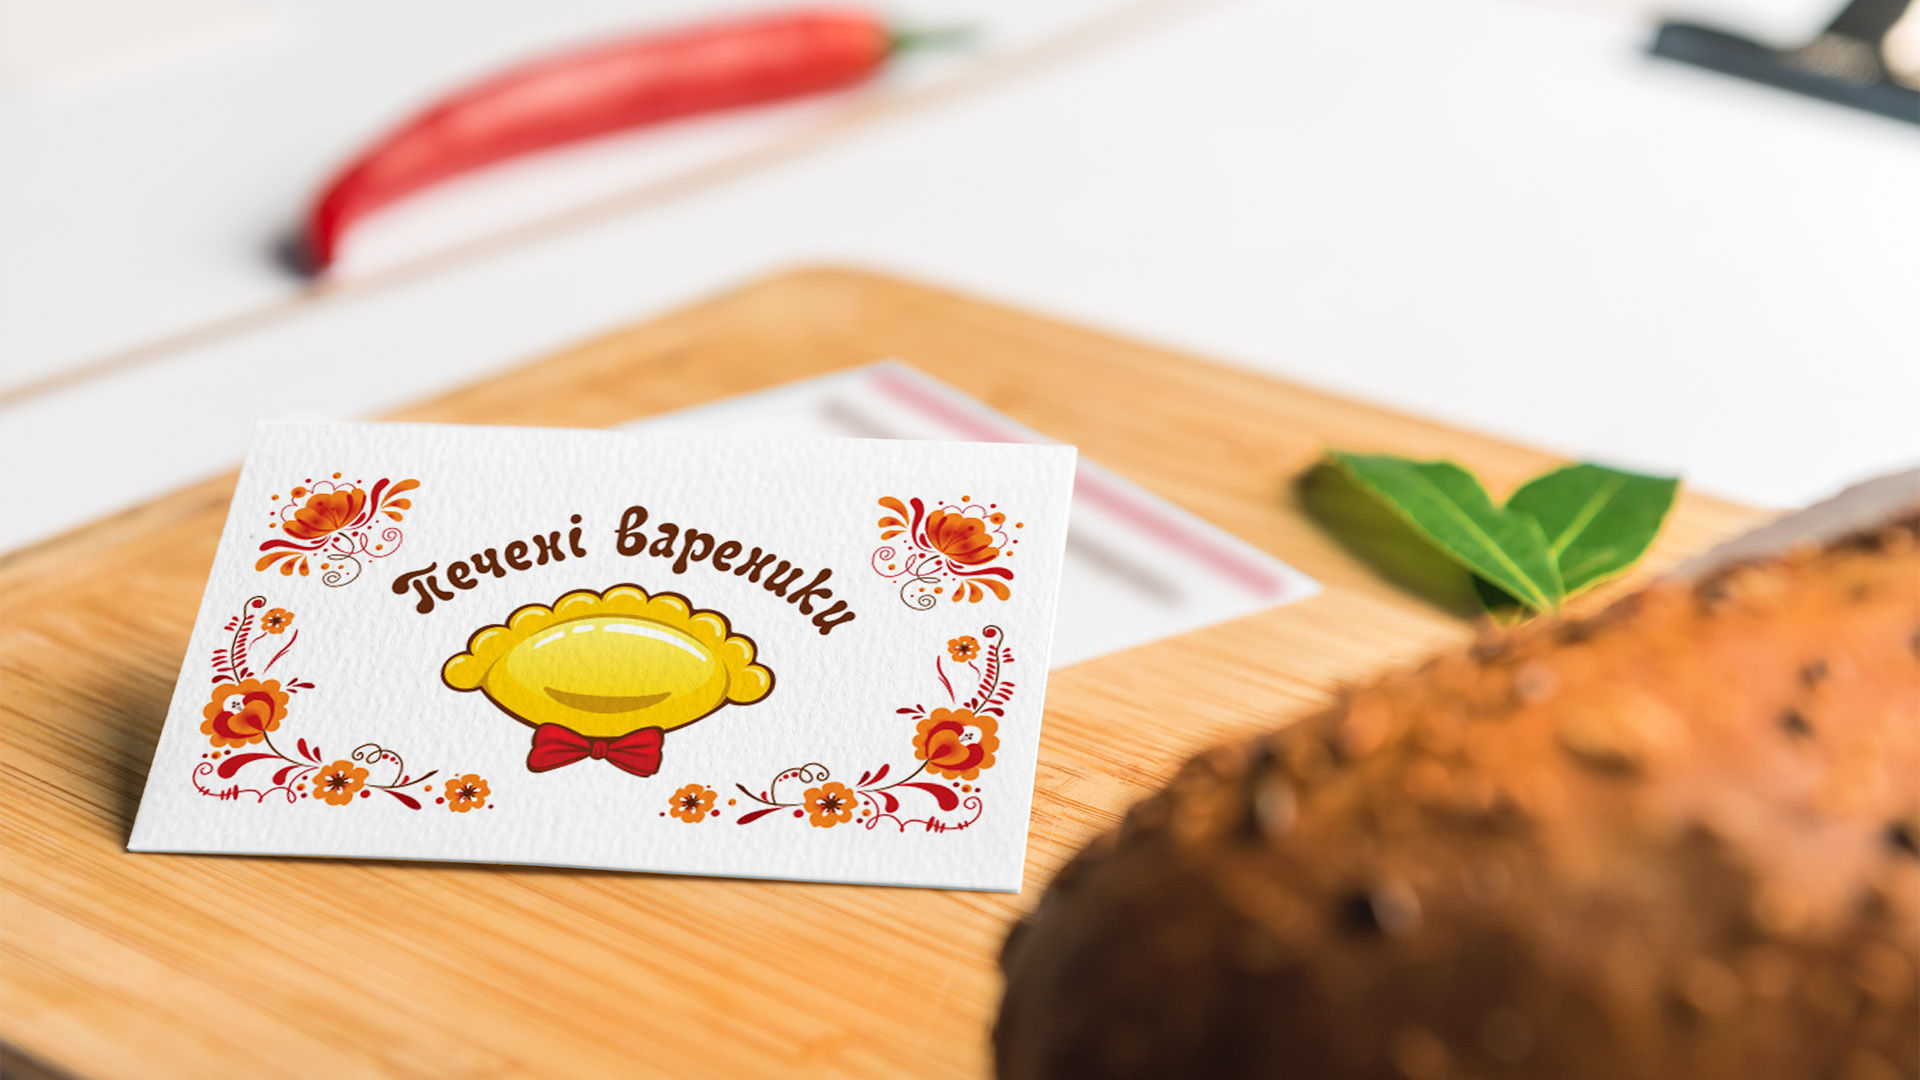 Creation of the logo фаст-фуд of the restaurant, Fast food restaurant logo